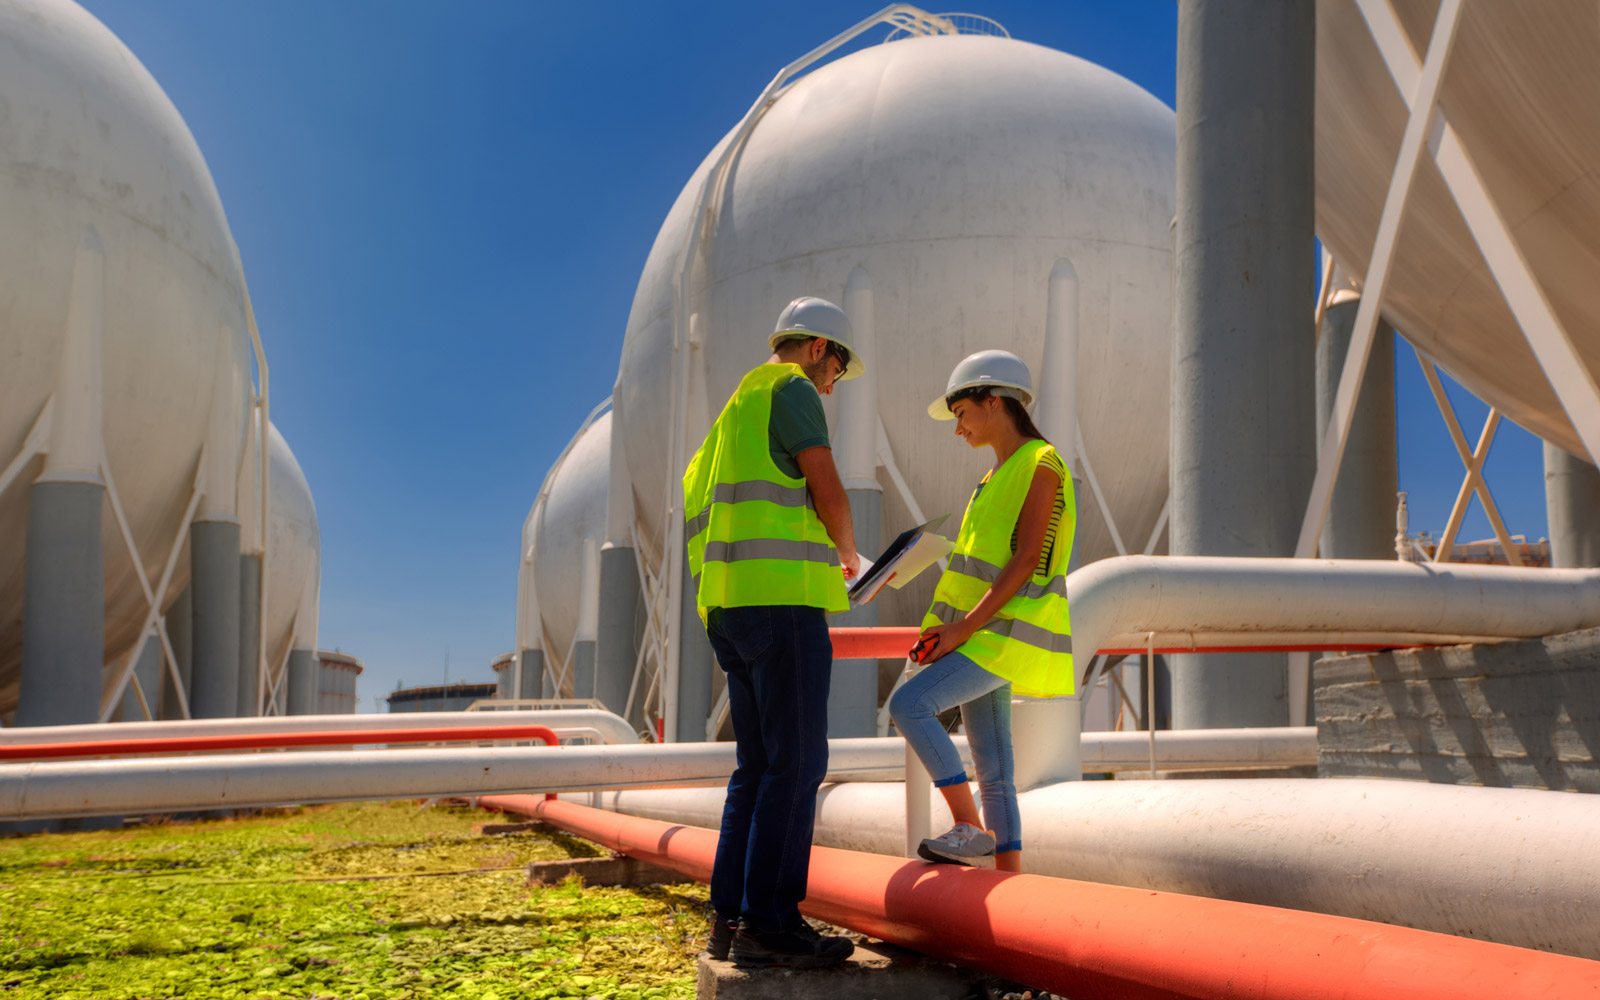 Refining zone and technicians